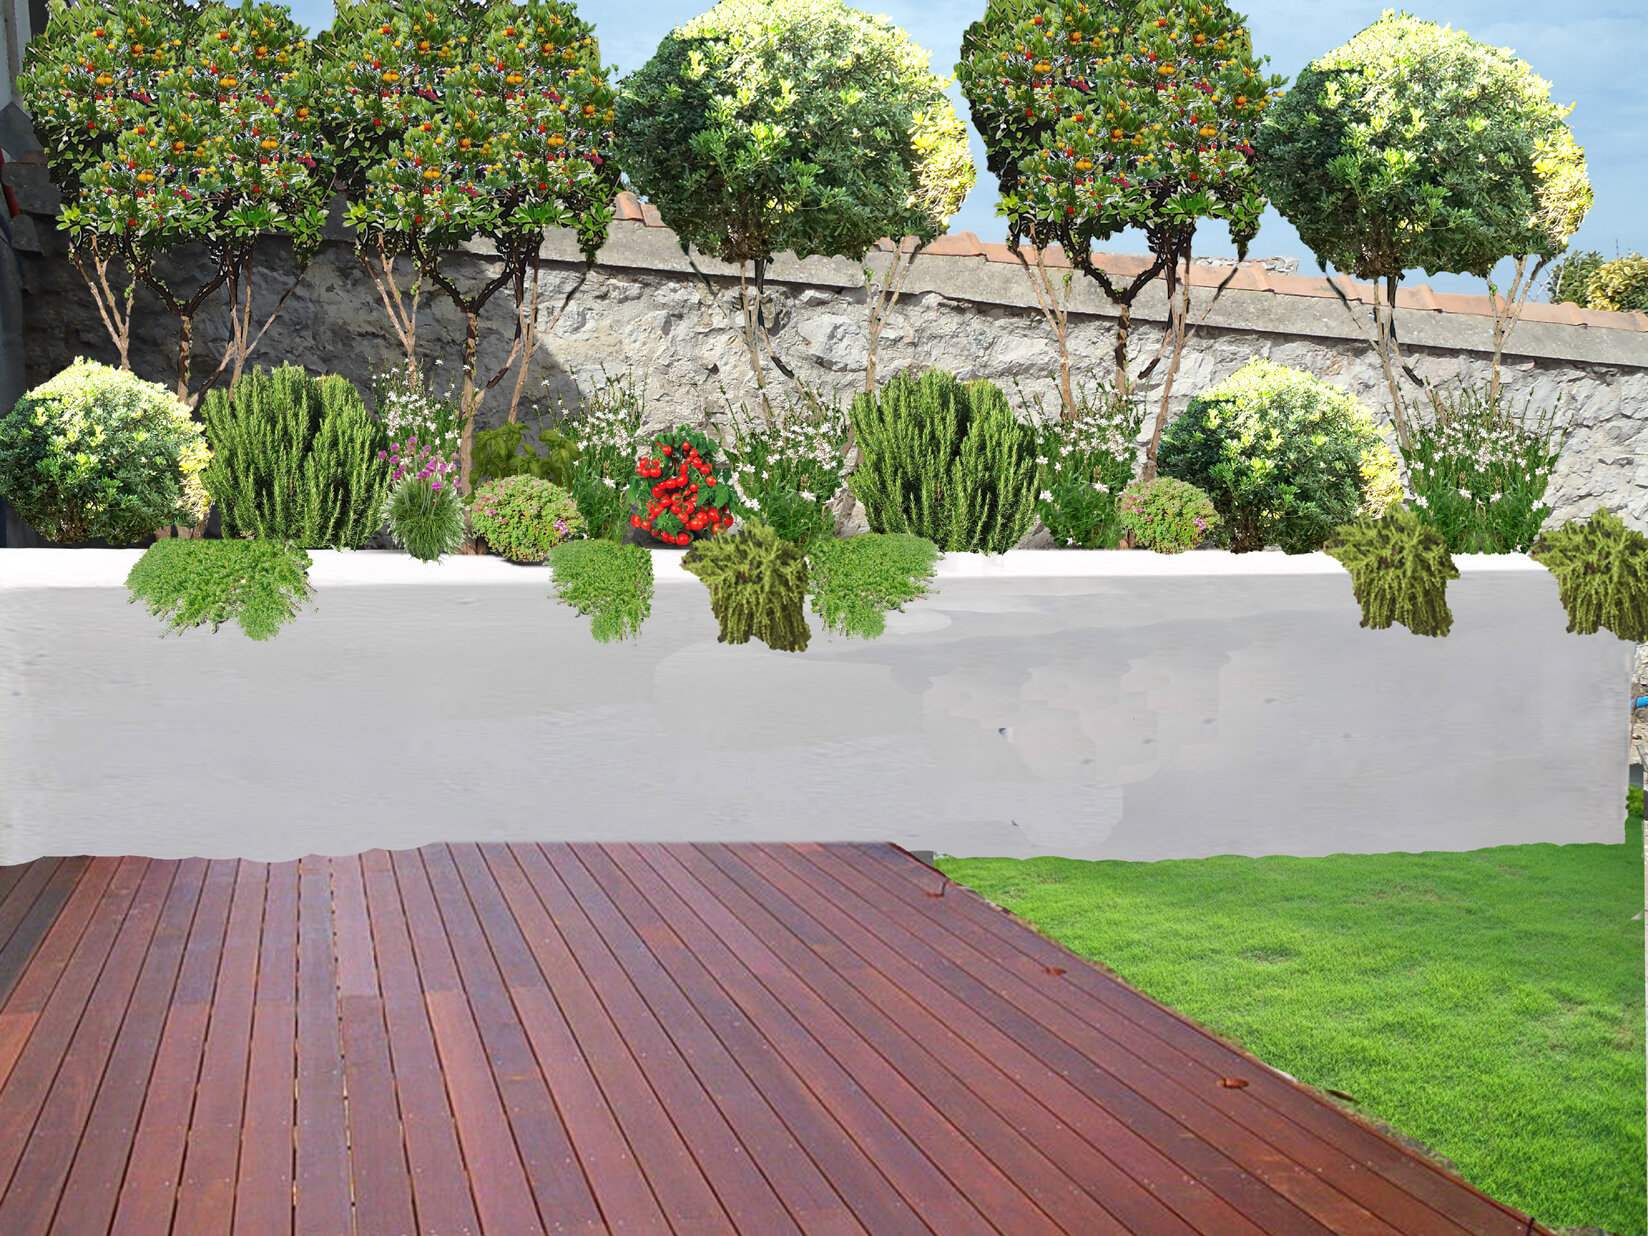 Jardin bord de mer marseille 13 maison contemporaine for Jardin plantation